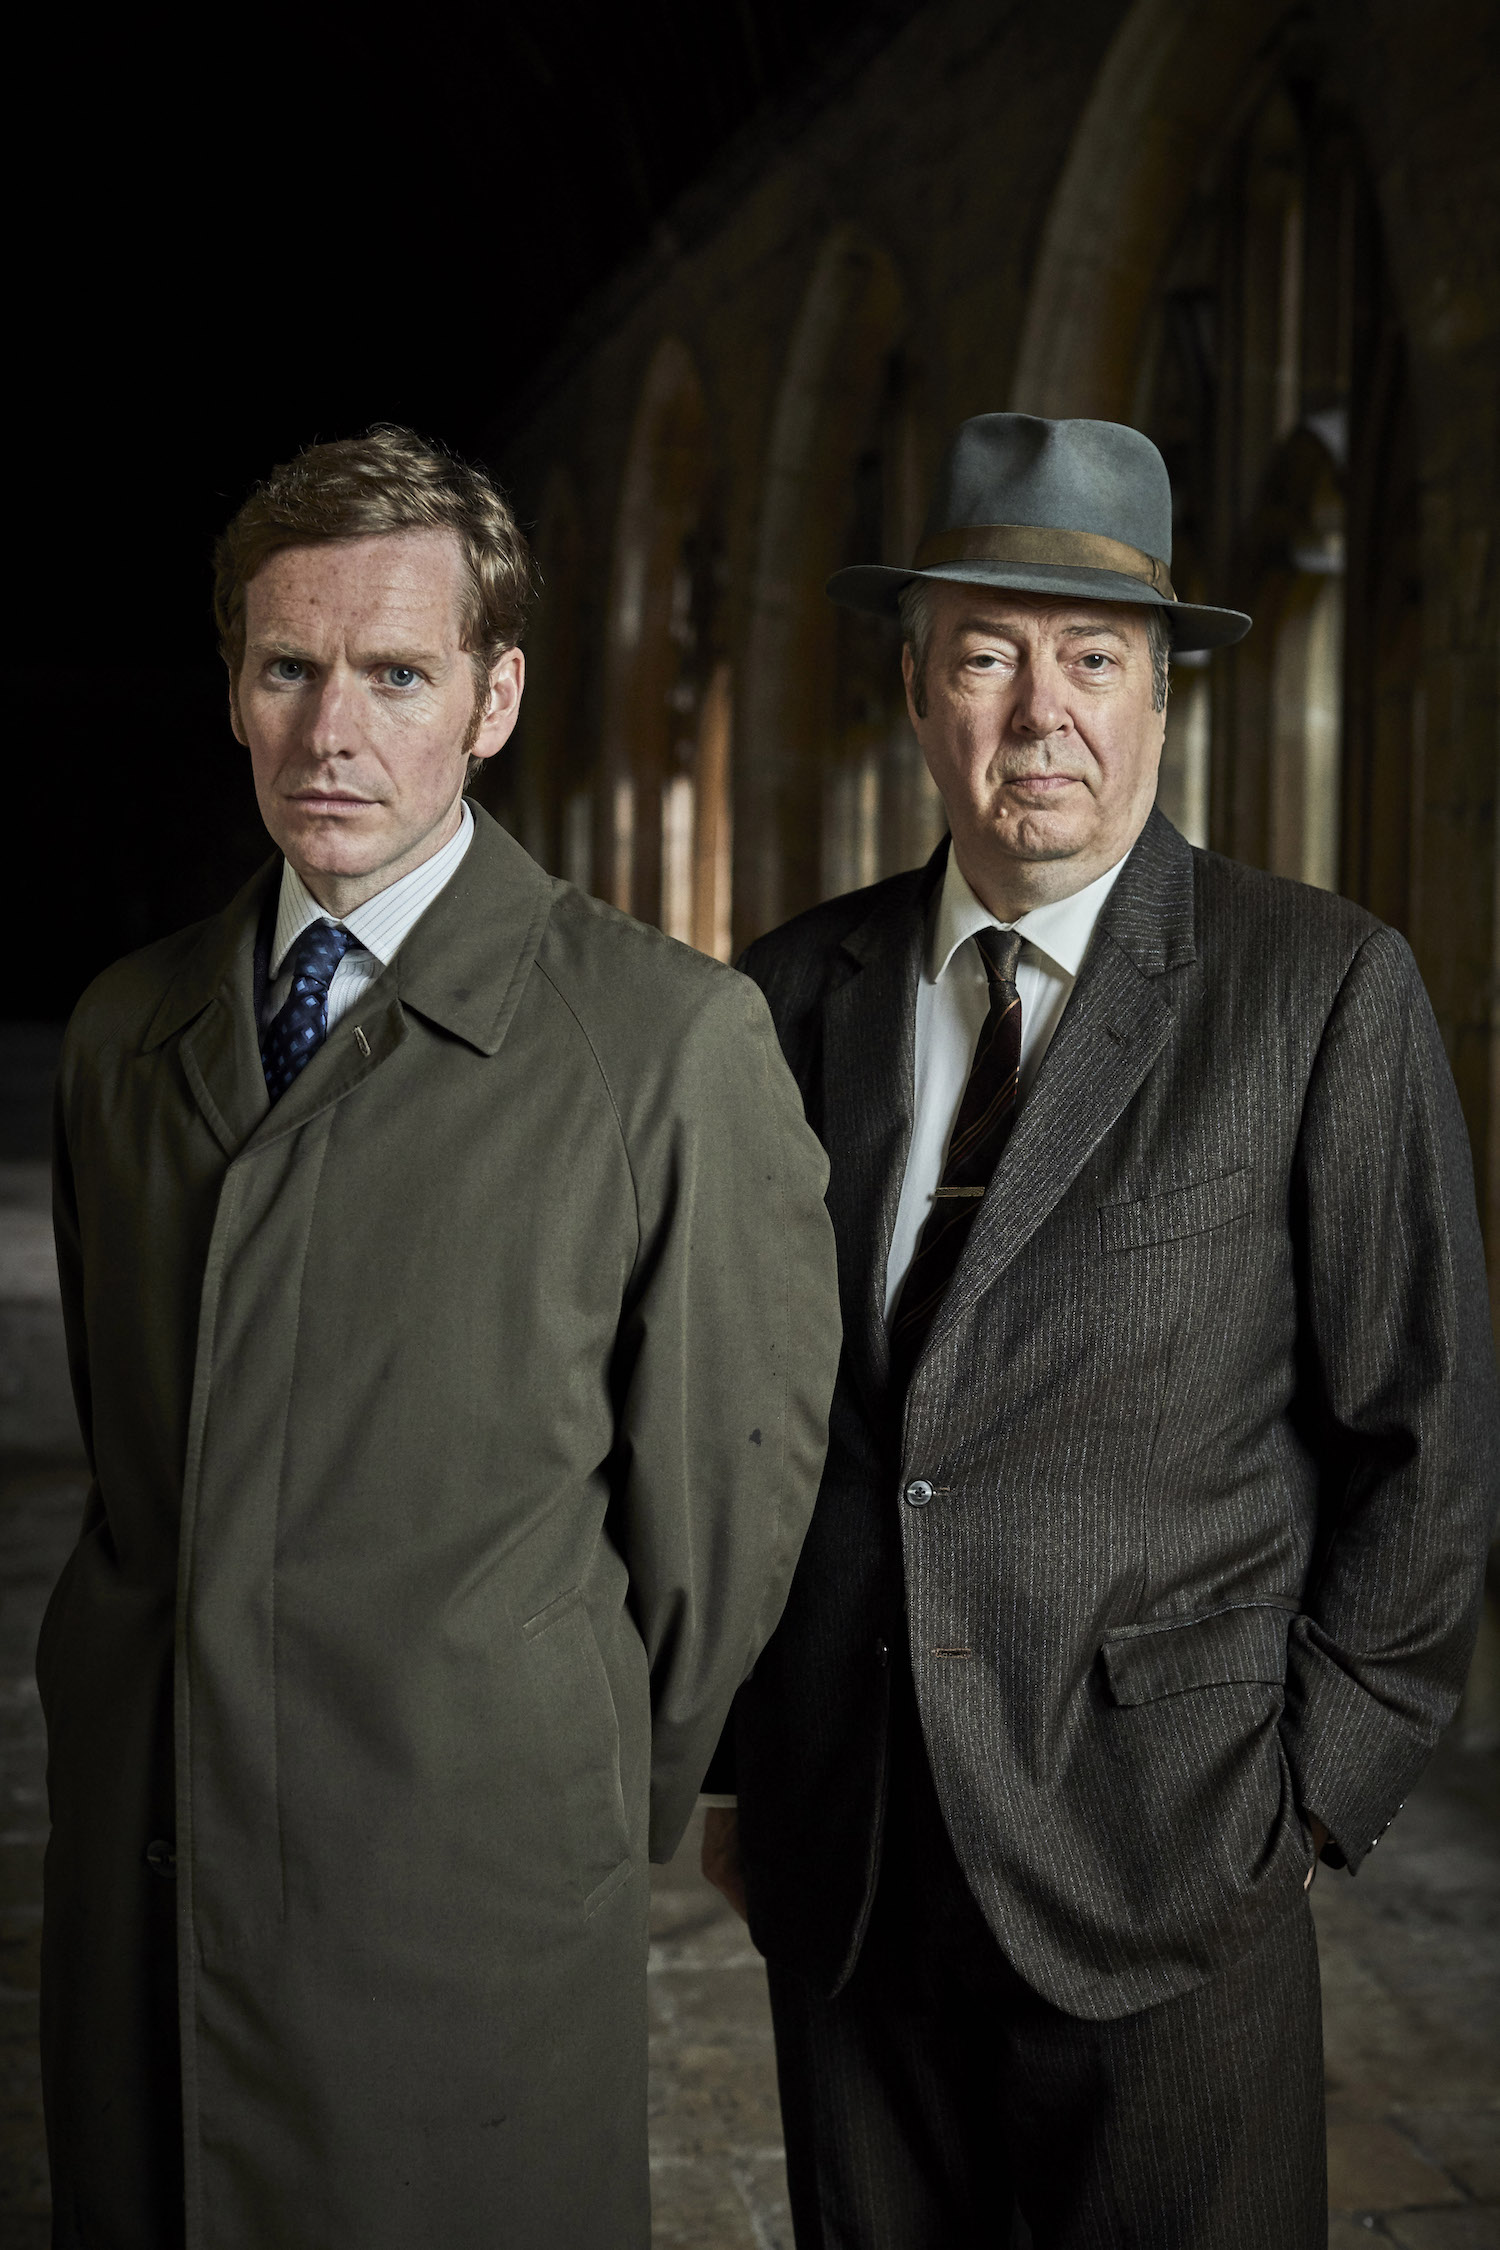 Shaun Evans as Morse and Roger Allam as Fred Thursday in 'Endeavour' on PBS